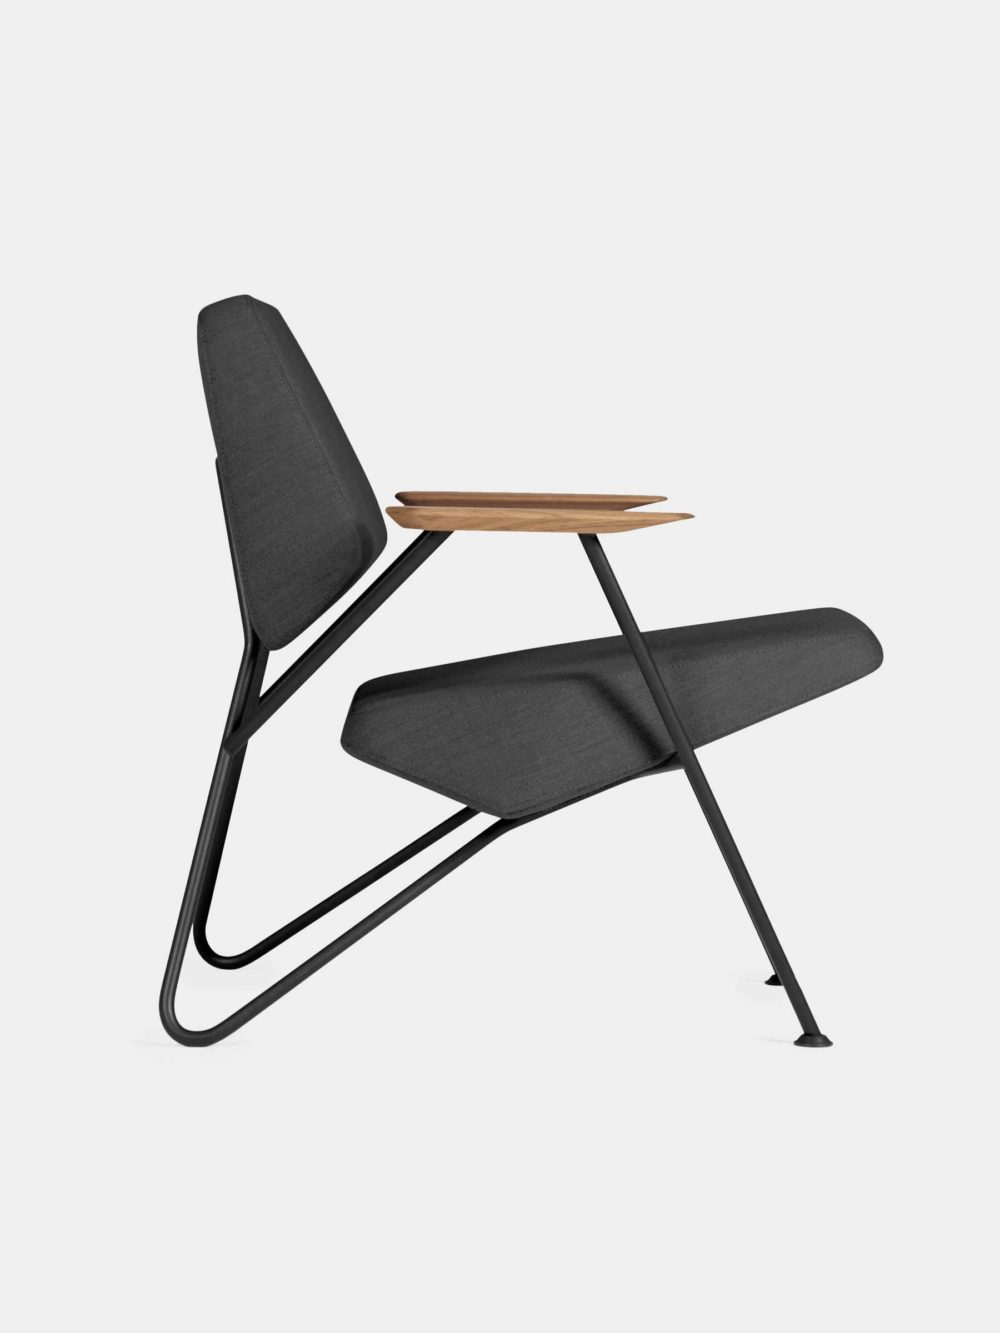 PROSTORIA POLYGON ARMCHAIR (black) - available at utopiast.com